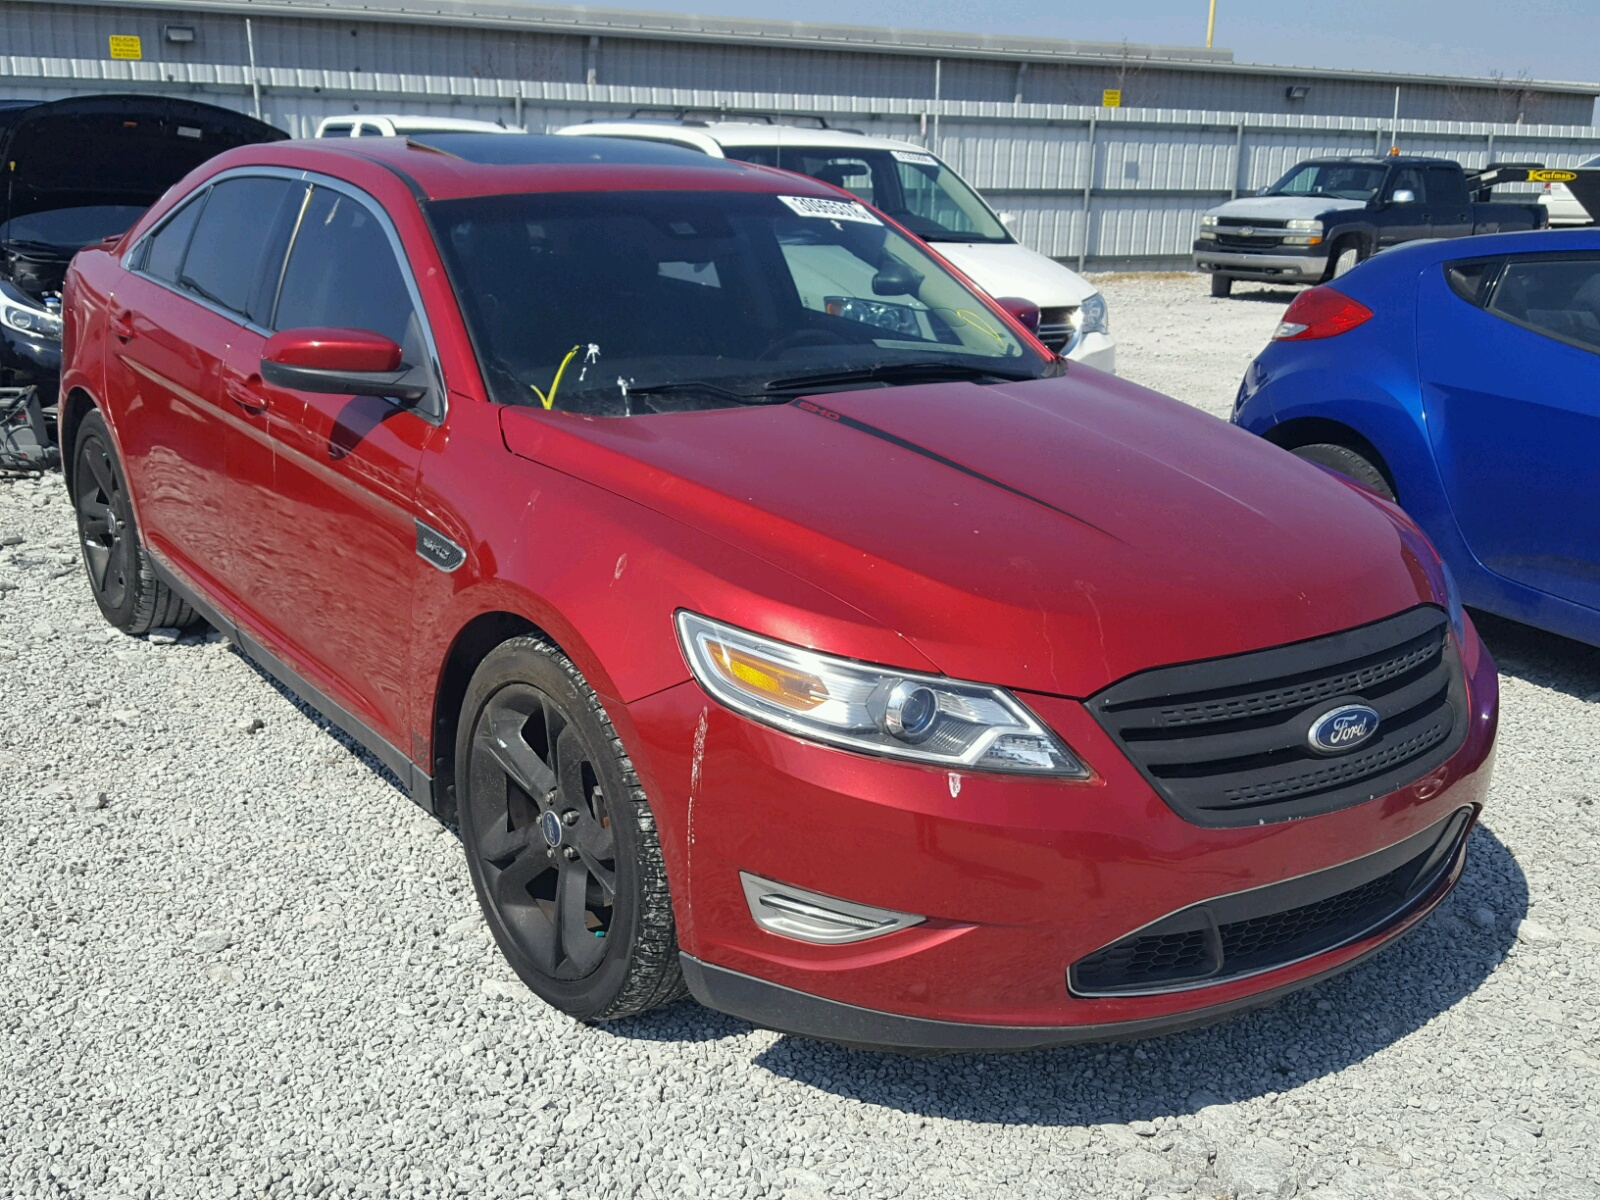 Salvage 2010 Ford TAURUS SHO for sale